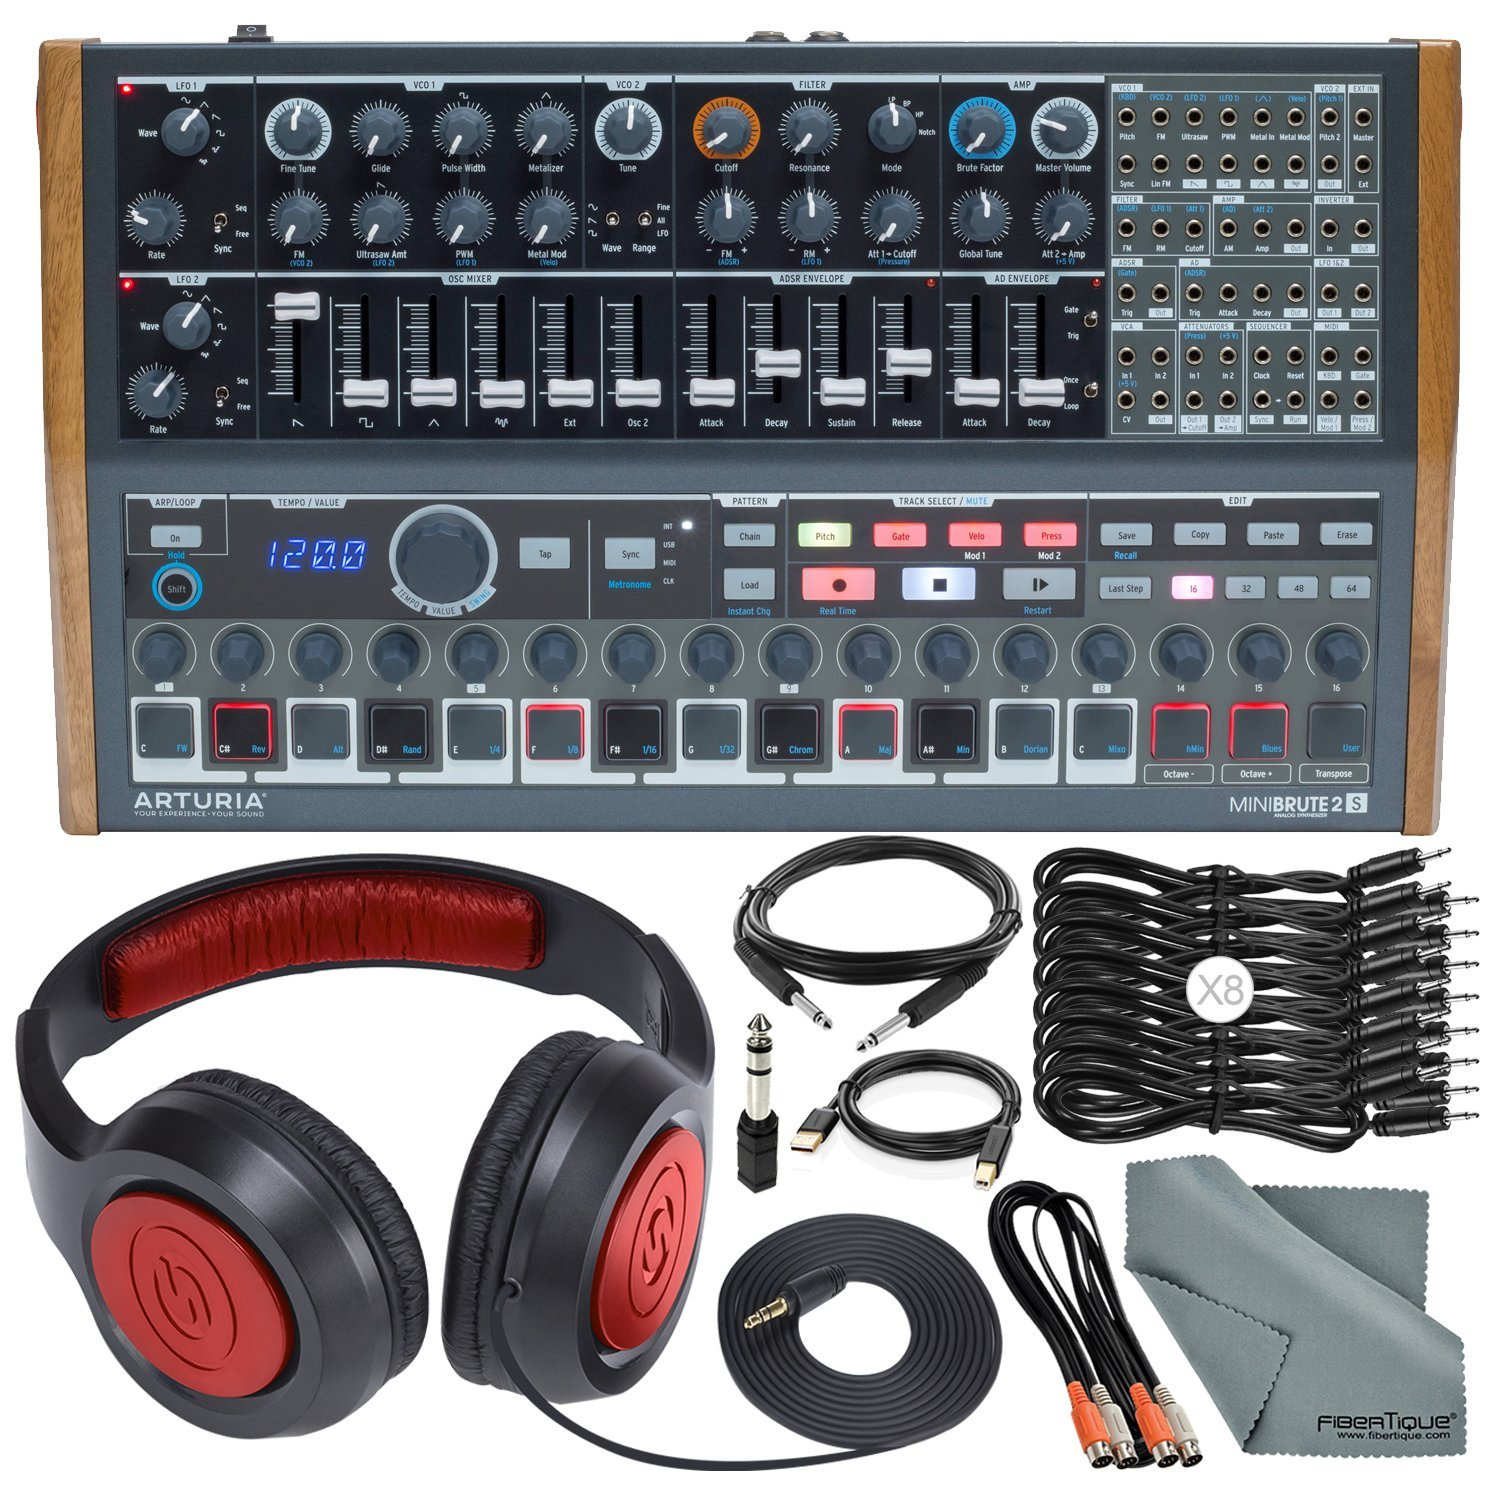 Arturia MINIBRUTE 2S Desktop Semi-Modular Analog Synthesizer/Sequencer w/MIDI & USB and Accessory Bundle with Headphones, 11X Cables, Fibertique Cloth by Photo Savings